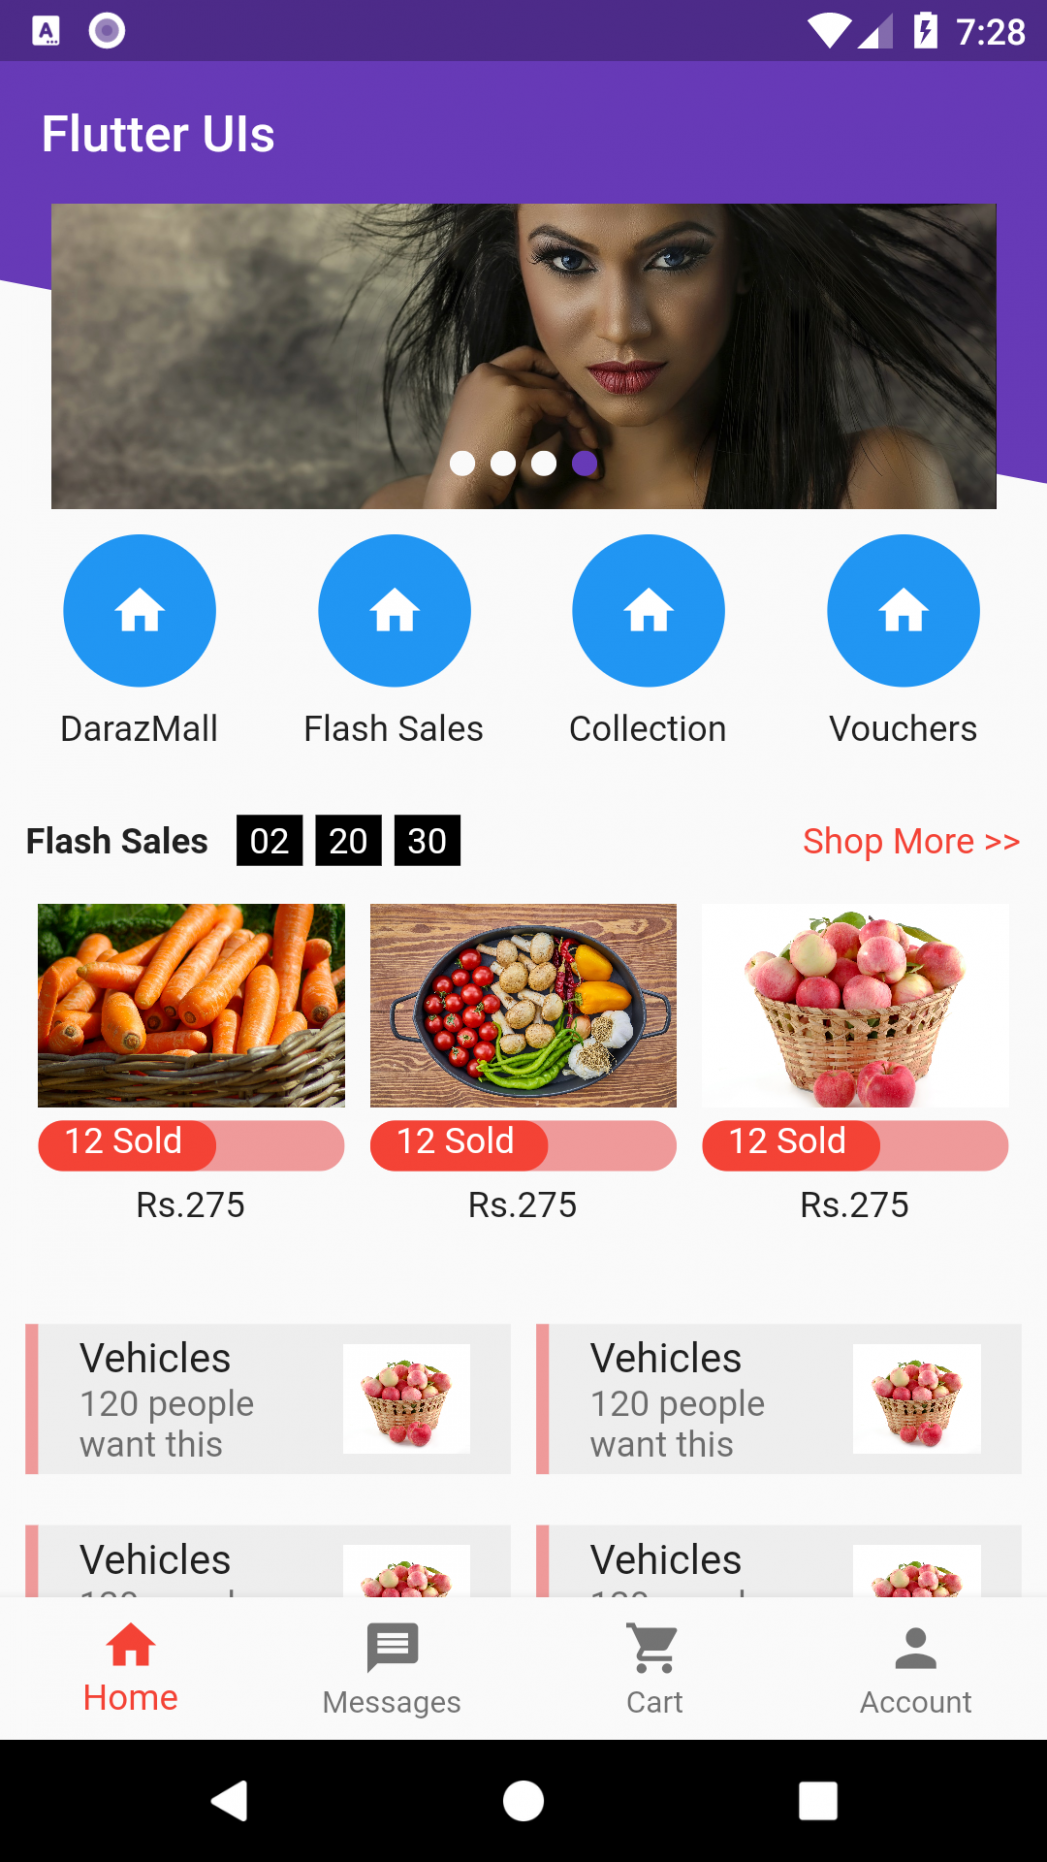 Trying to replicate various app UIs in flutter